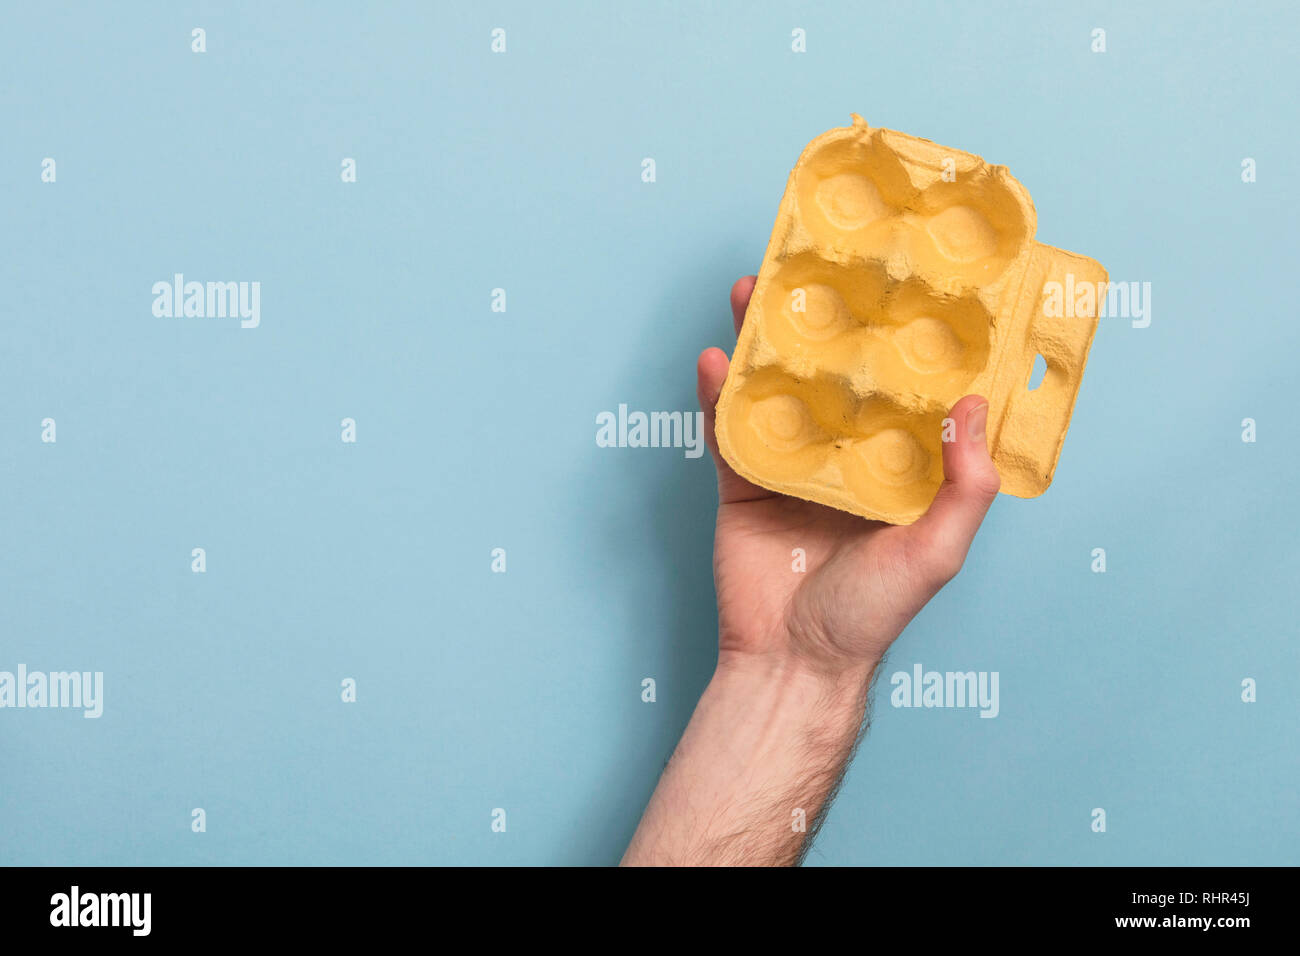 Hand holding empty egg box recycling rubbish - Stock Image